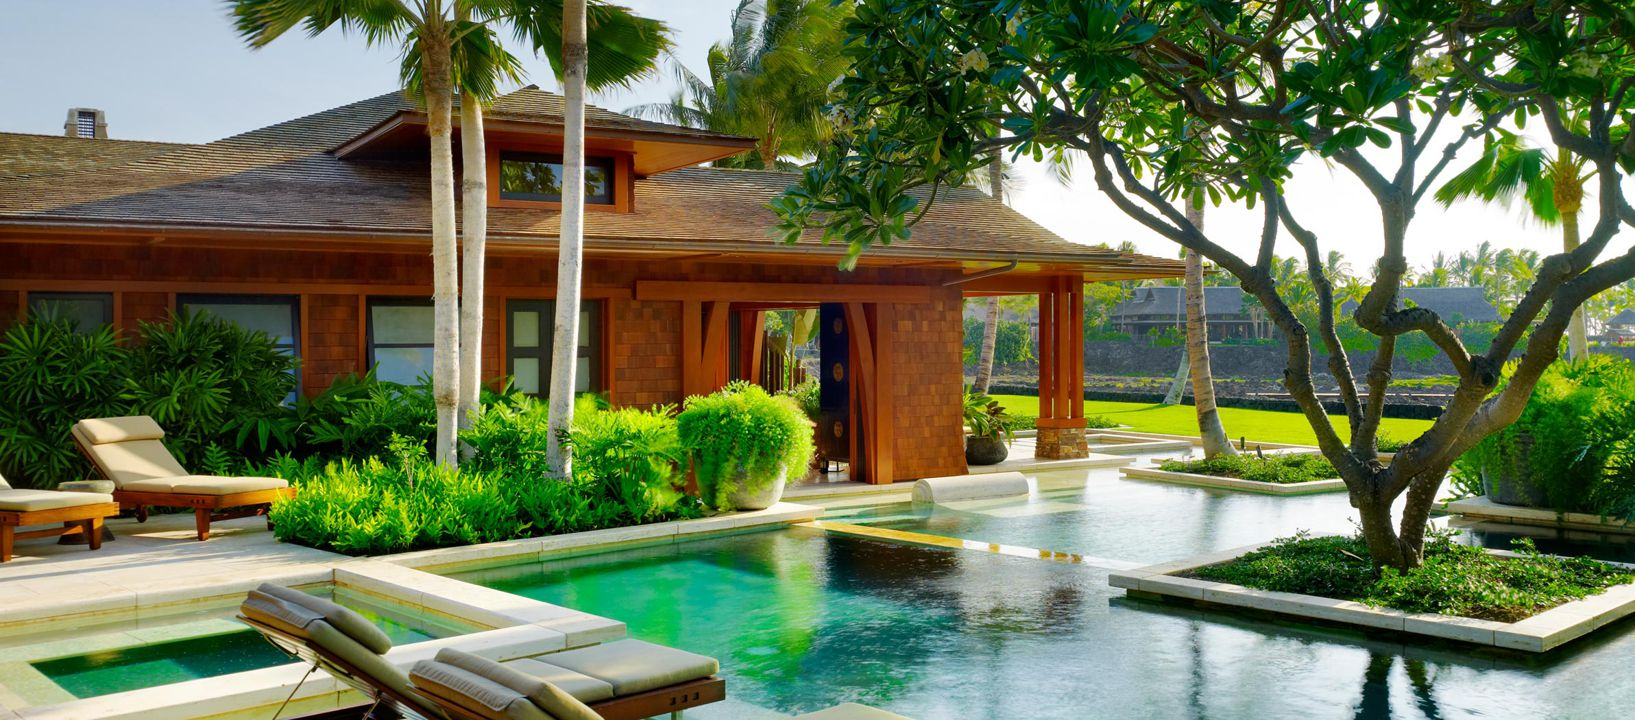 Choose Luxury Rent a Costa Rican Villa For Your Next Vacation